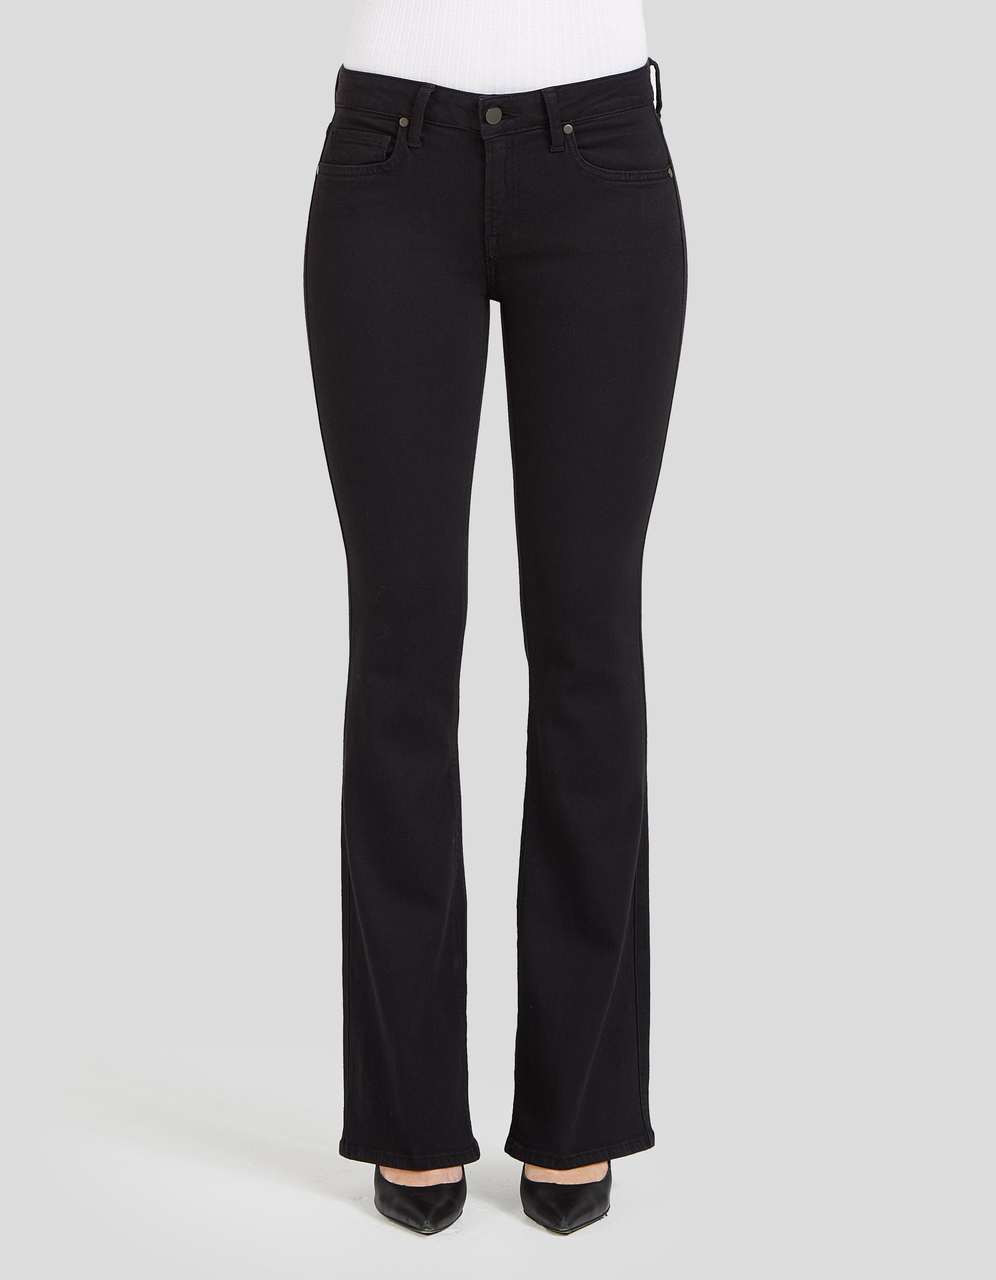 Slim Bootcut Jeans In Black Tint | Form Support Flattering Look 32 ...